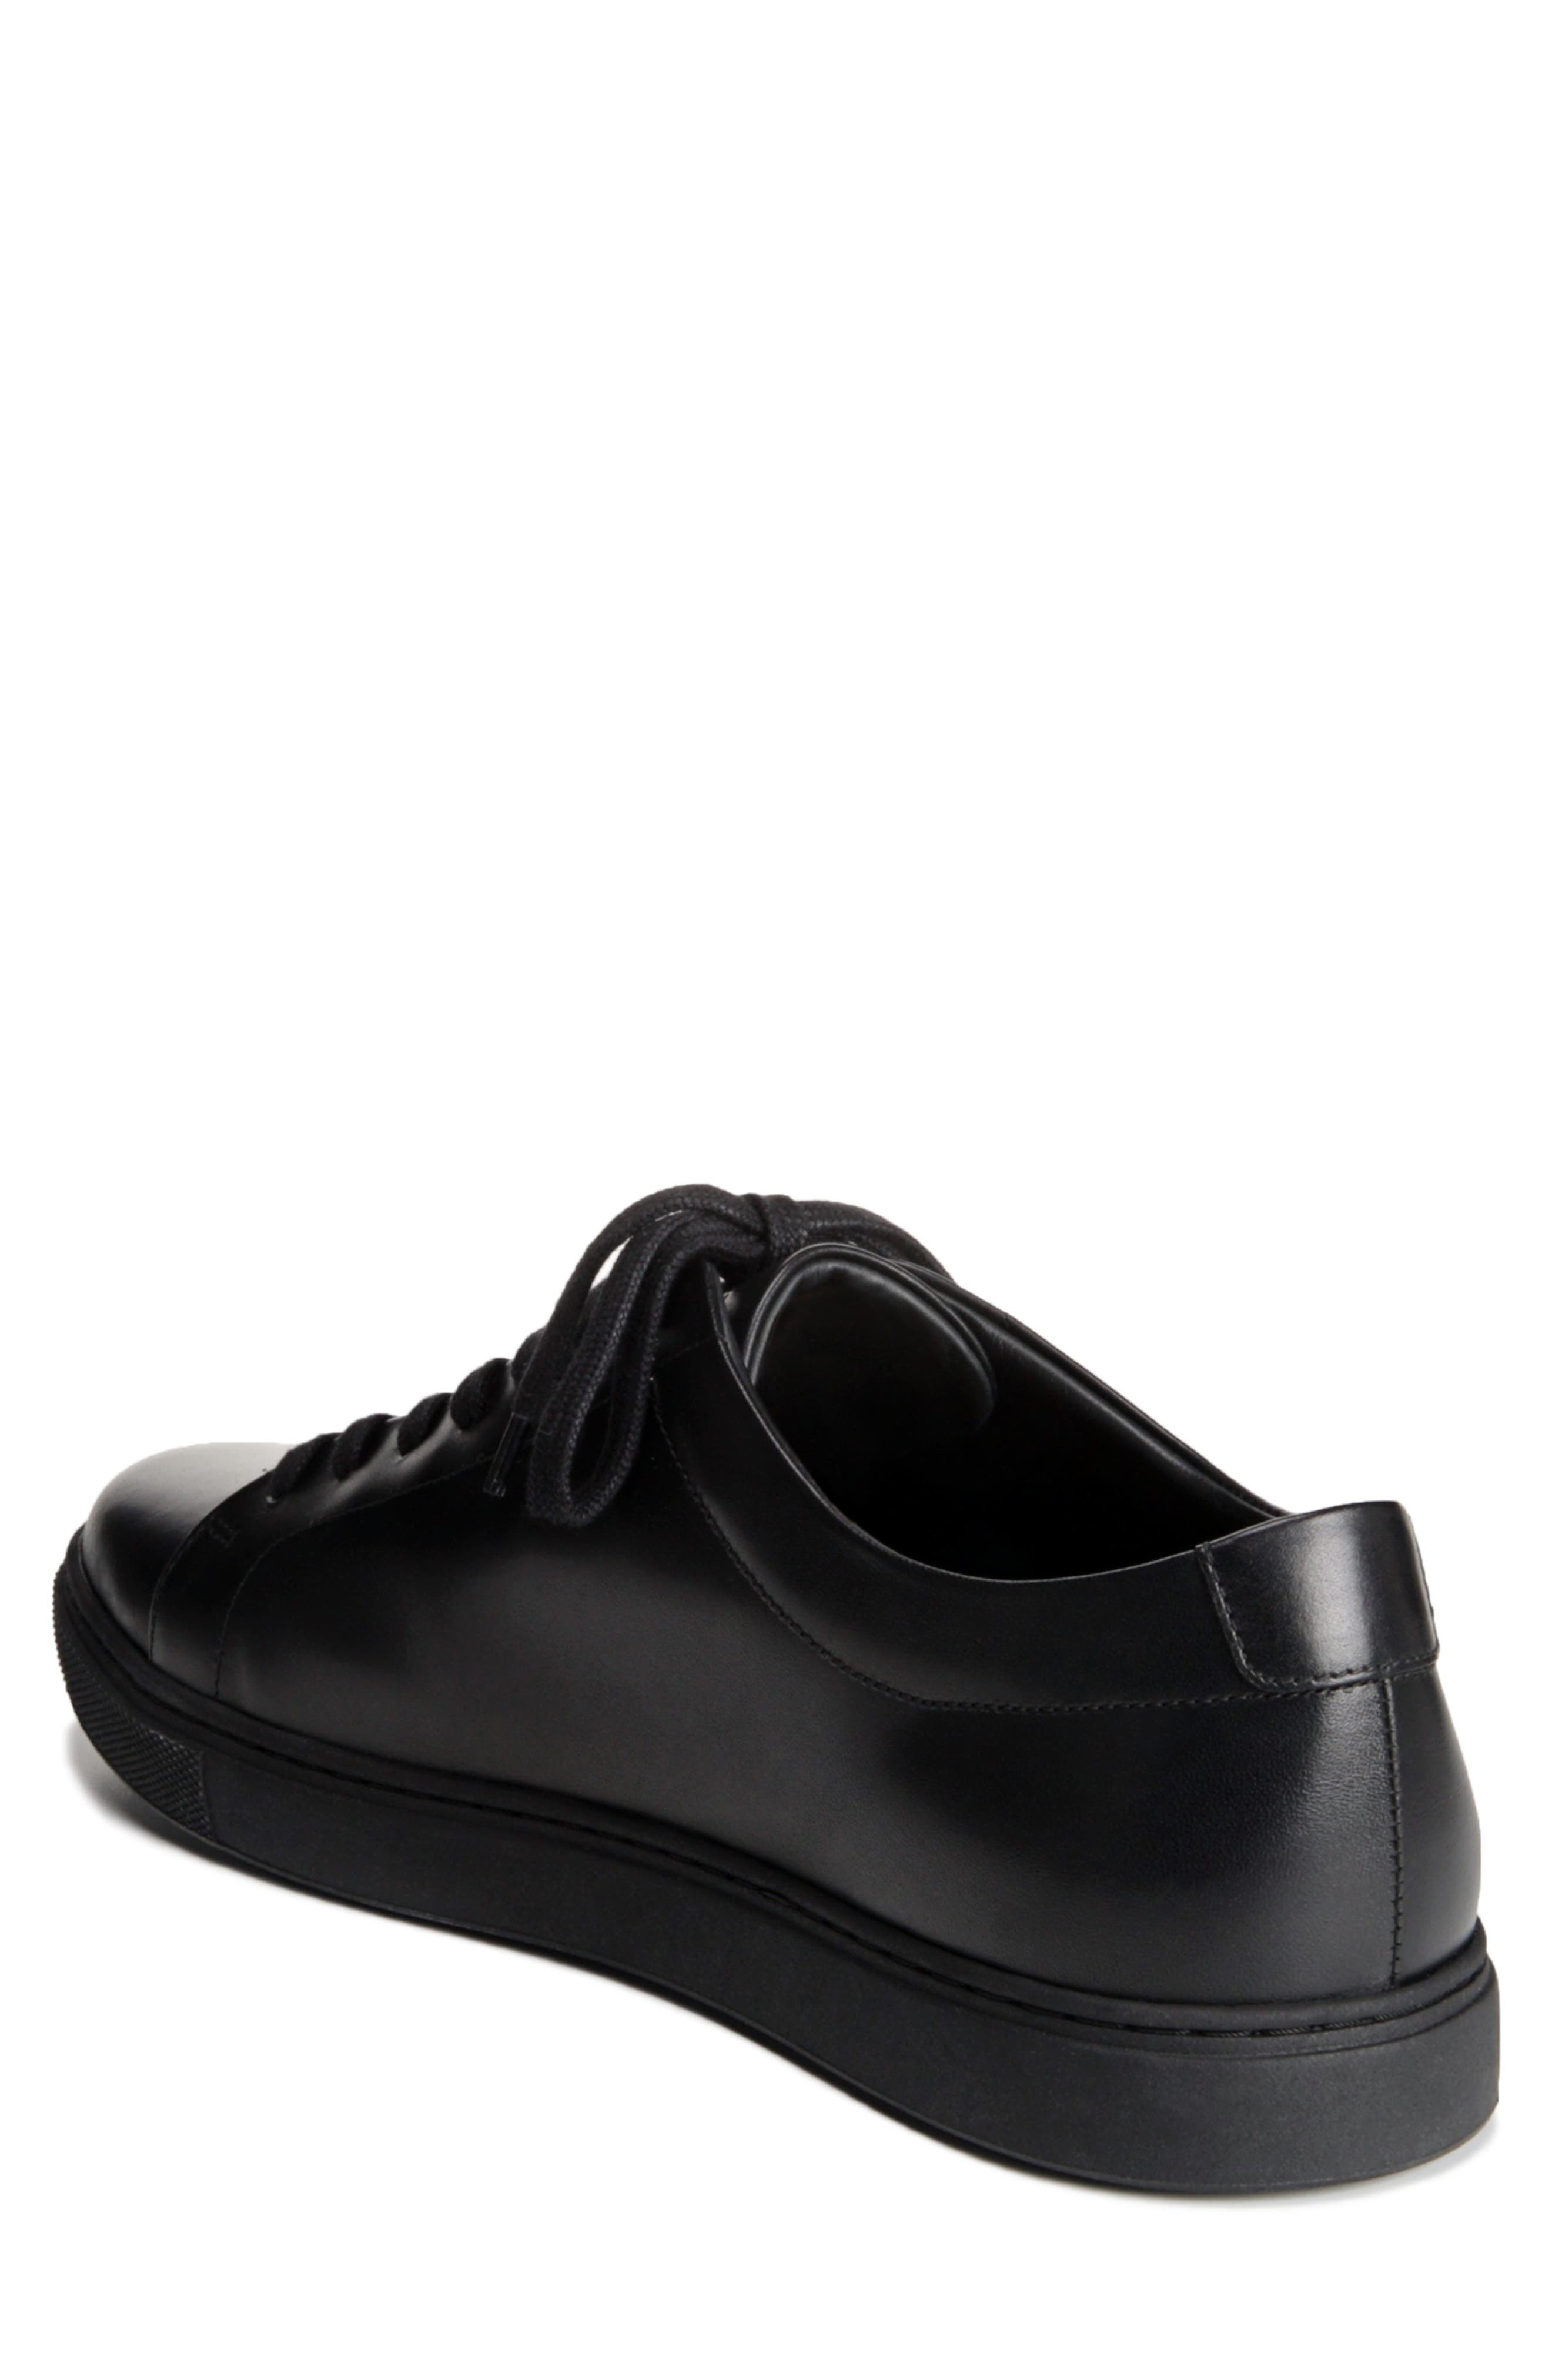 Canal Court Sneaker,                             Alternate thumbnail 2, color,                             BLACK LEATHER